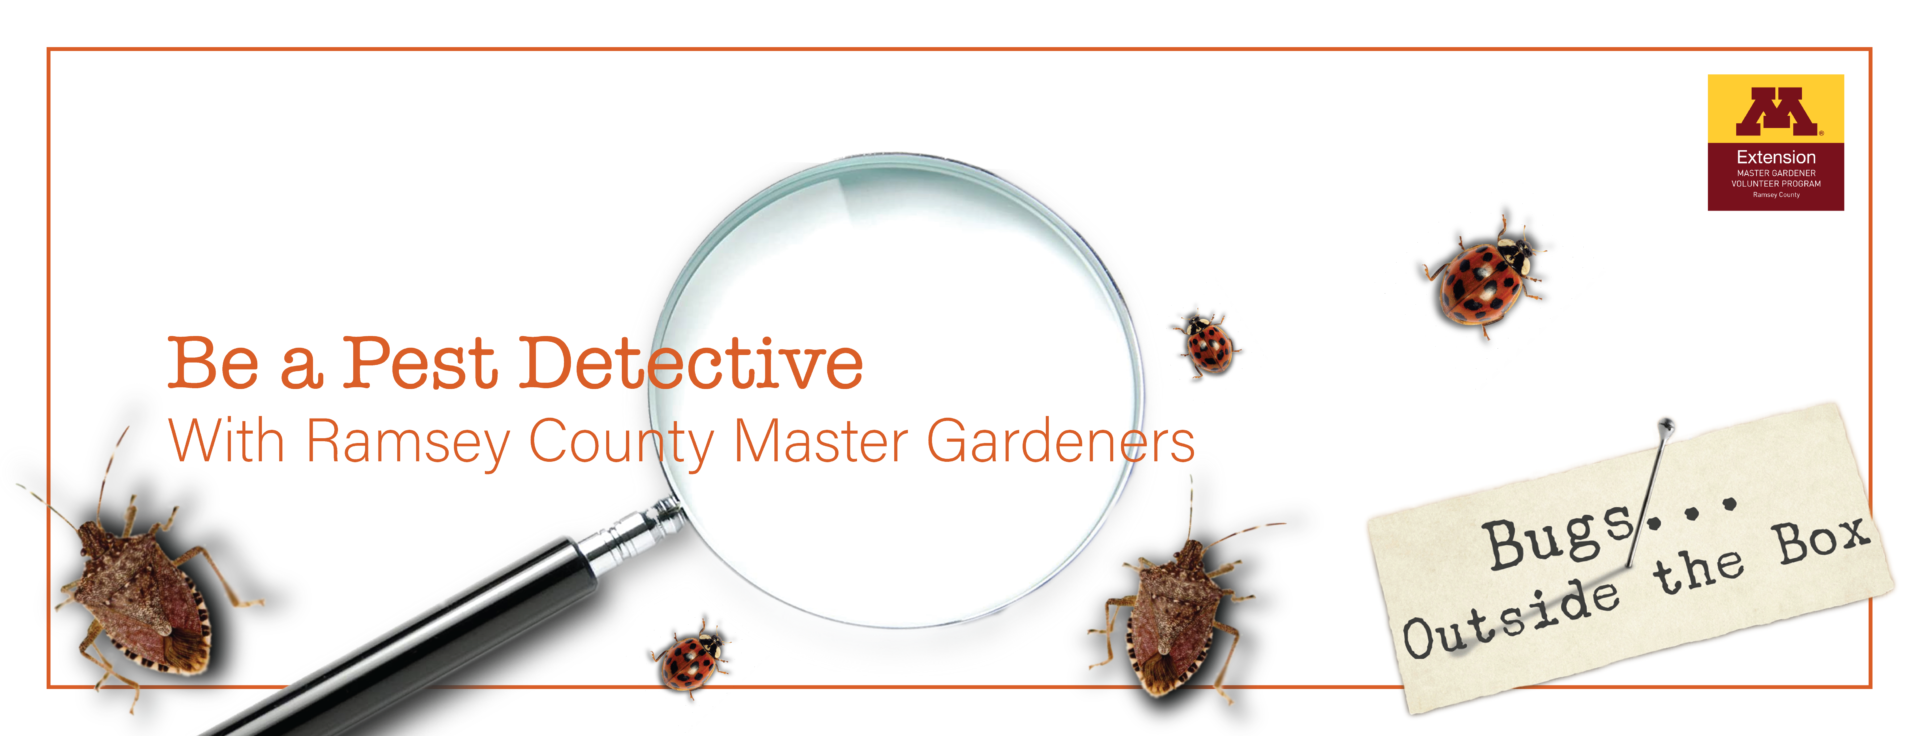 5 bugs and magnify glass with text: Be a pest detective with Ramsey County Master Gardeners